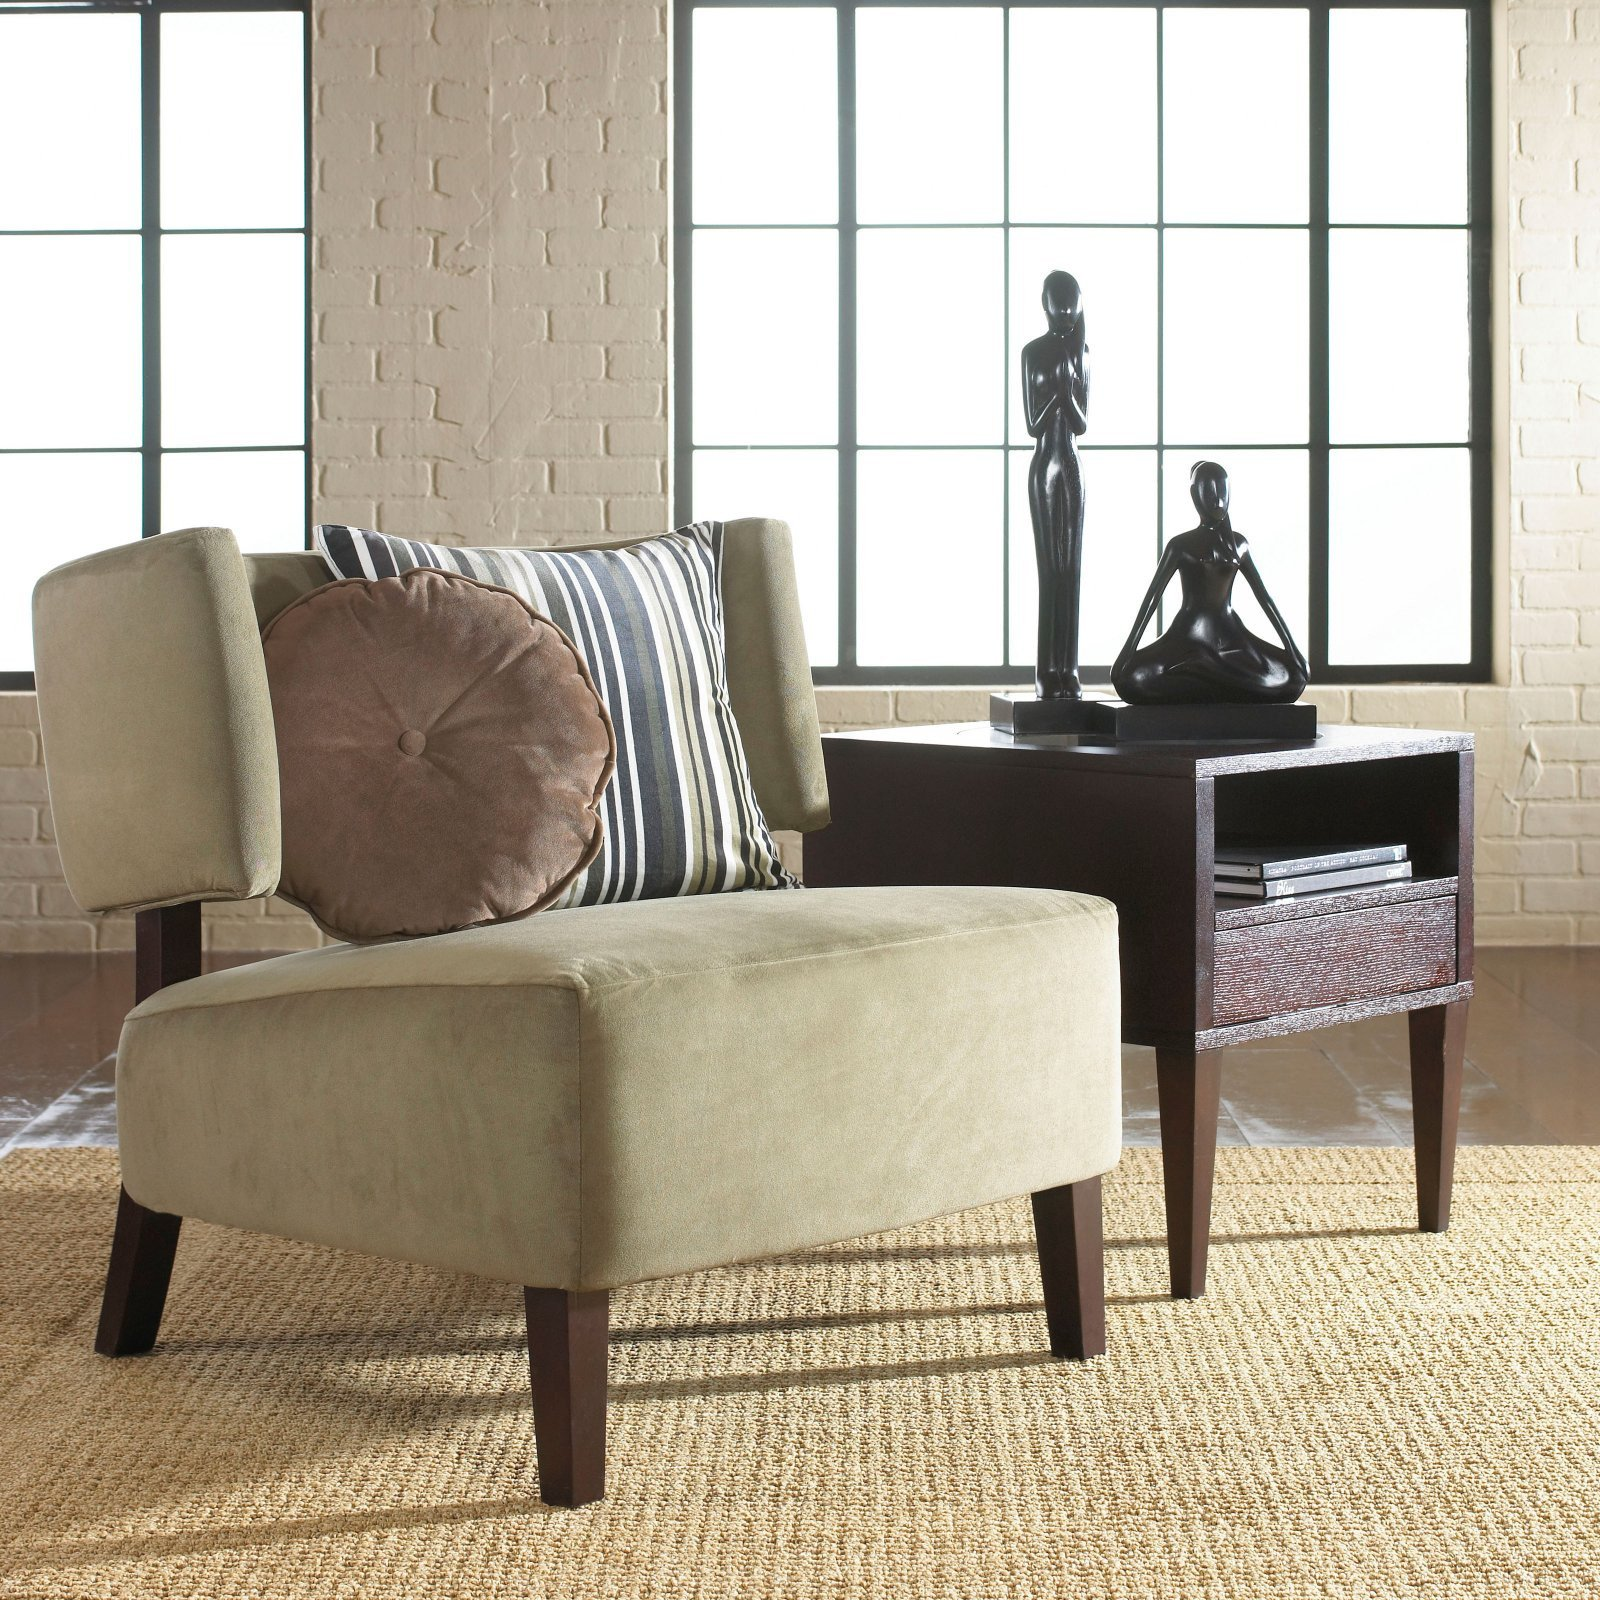 Comfortable Chairs Living Room New top 4 fortable Chairs for Living Room